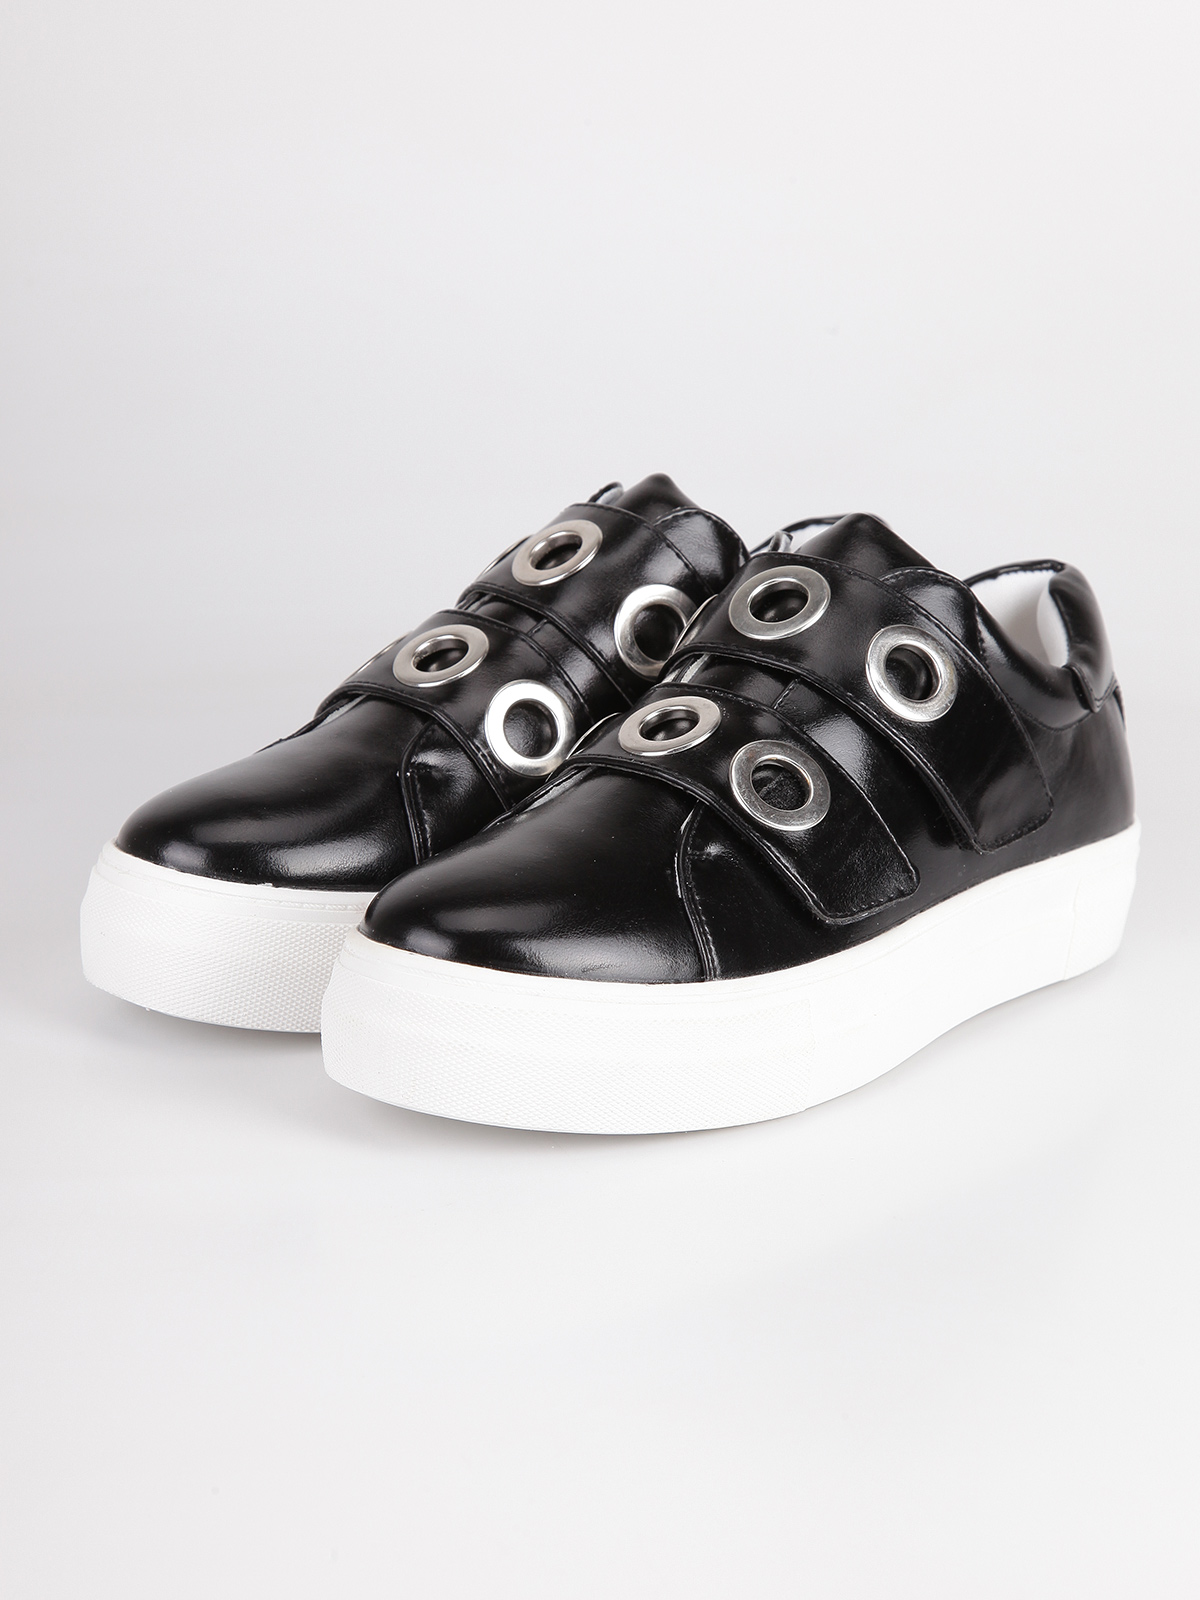 forme forme Avec Sneakers Plate Déchirure Plate Sneakers dxBrCoeW